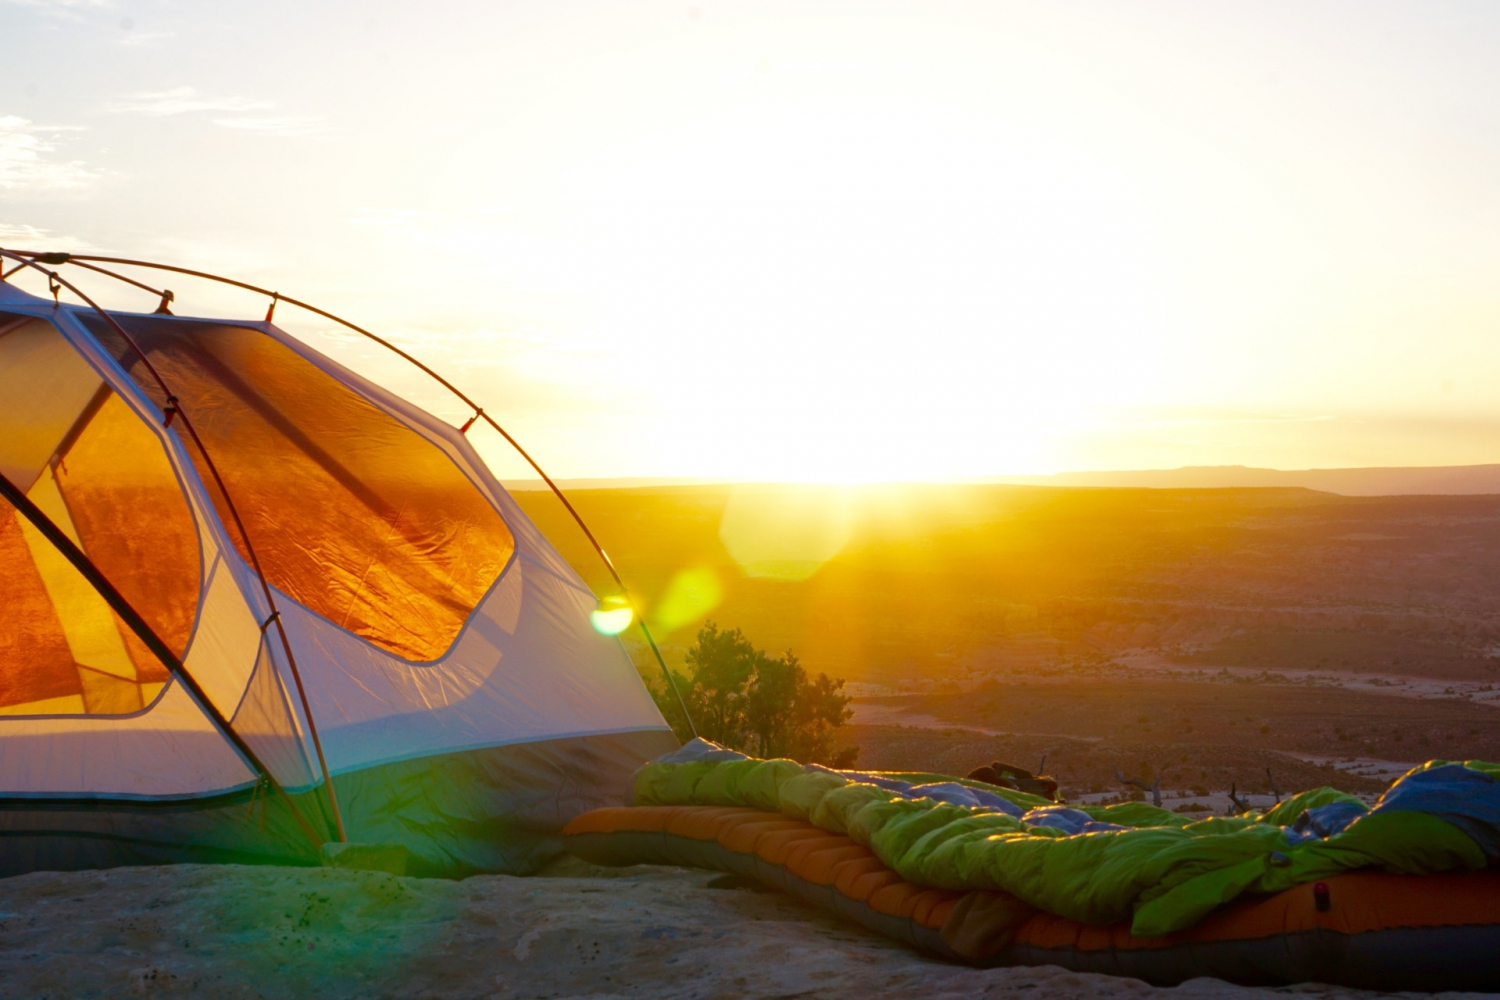 Camping 101 - All You Need To Know About Camping Vacations